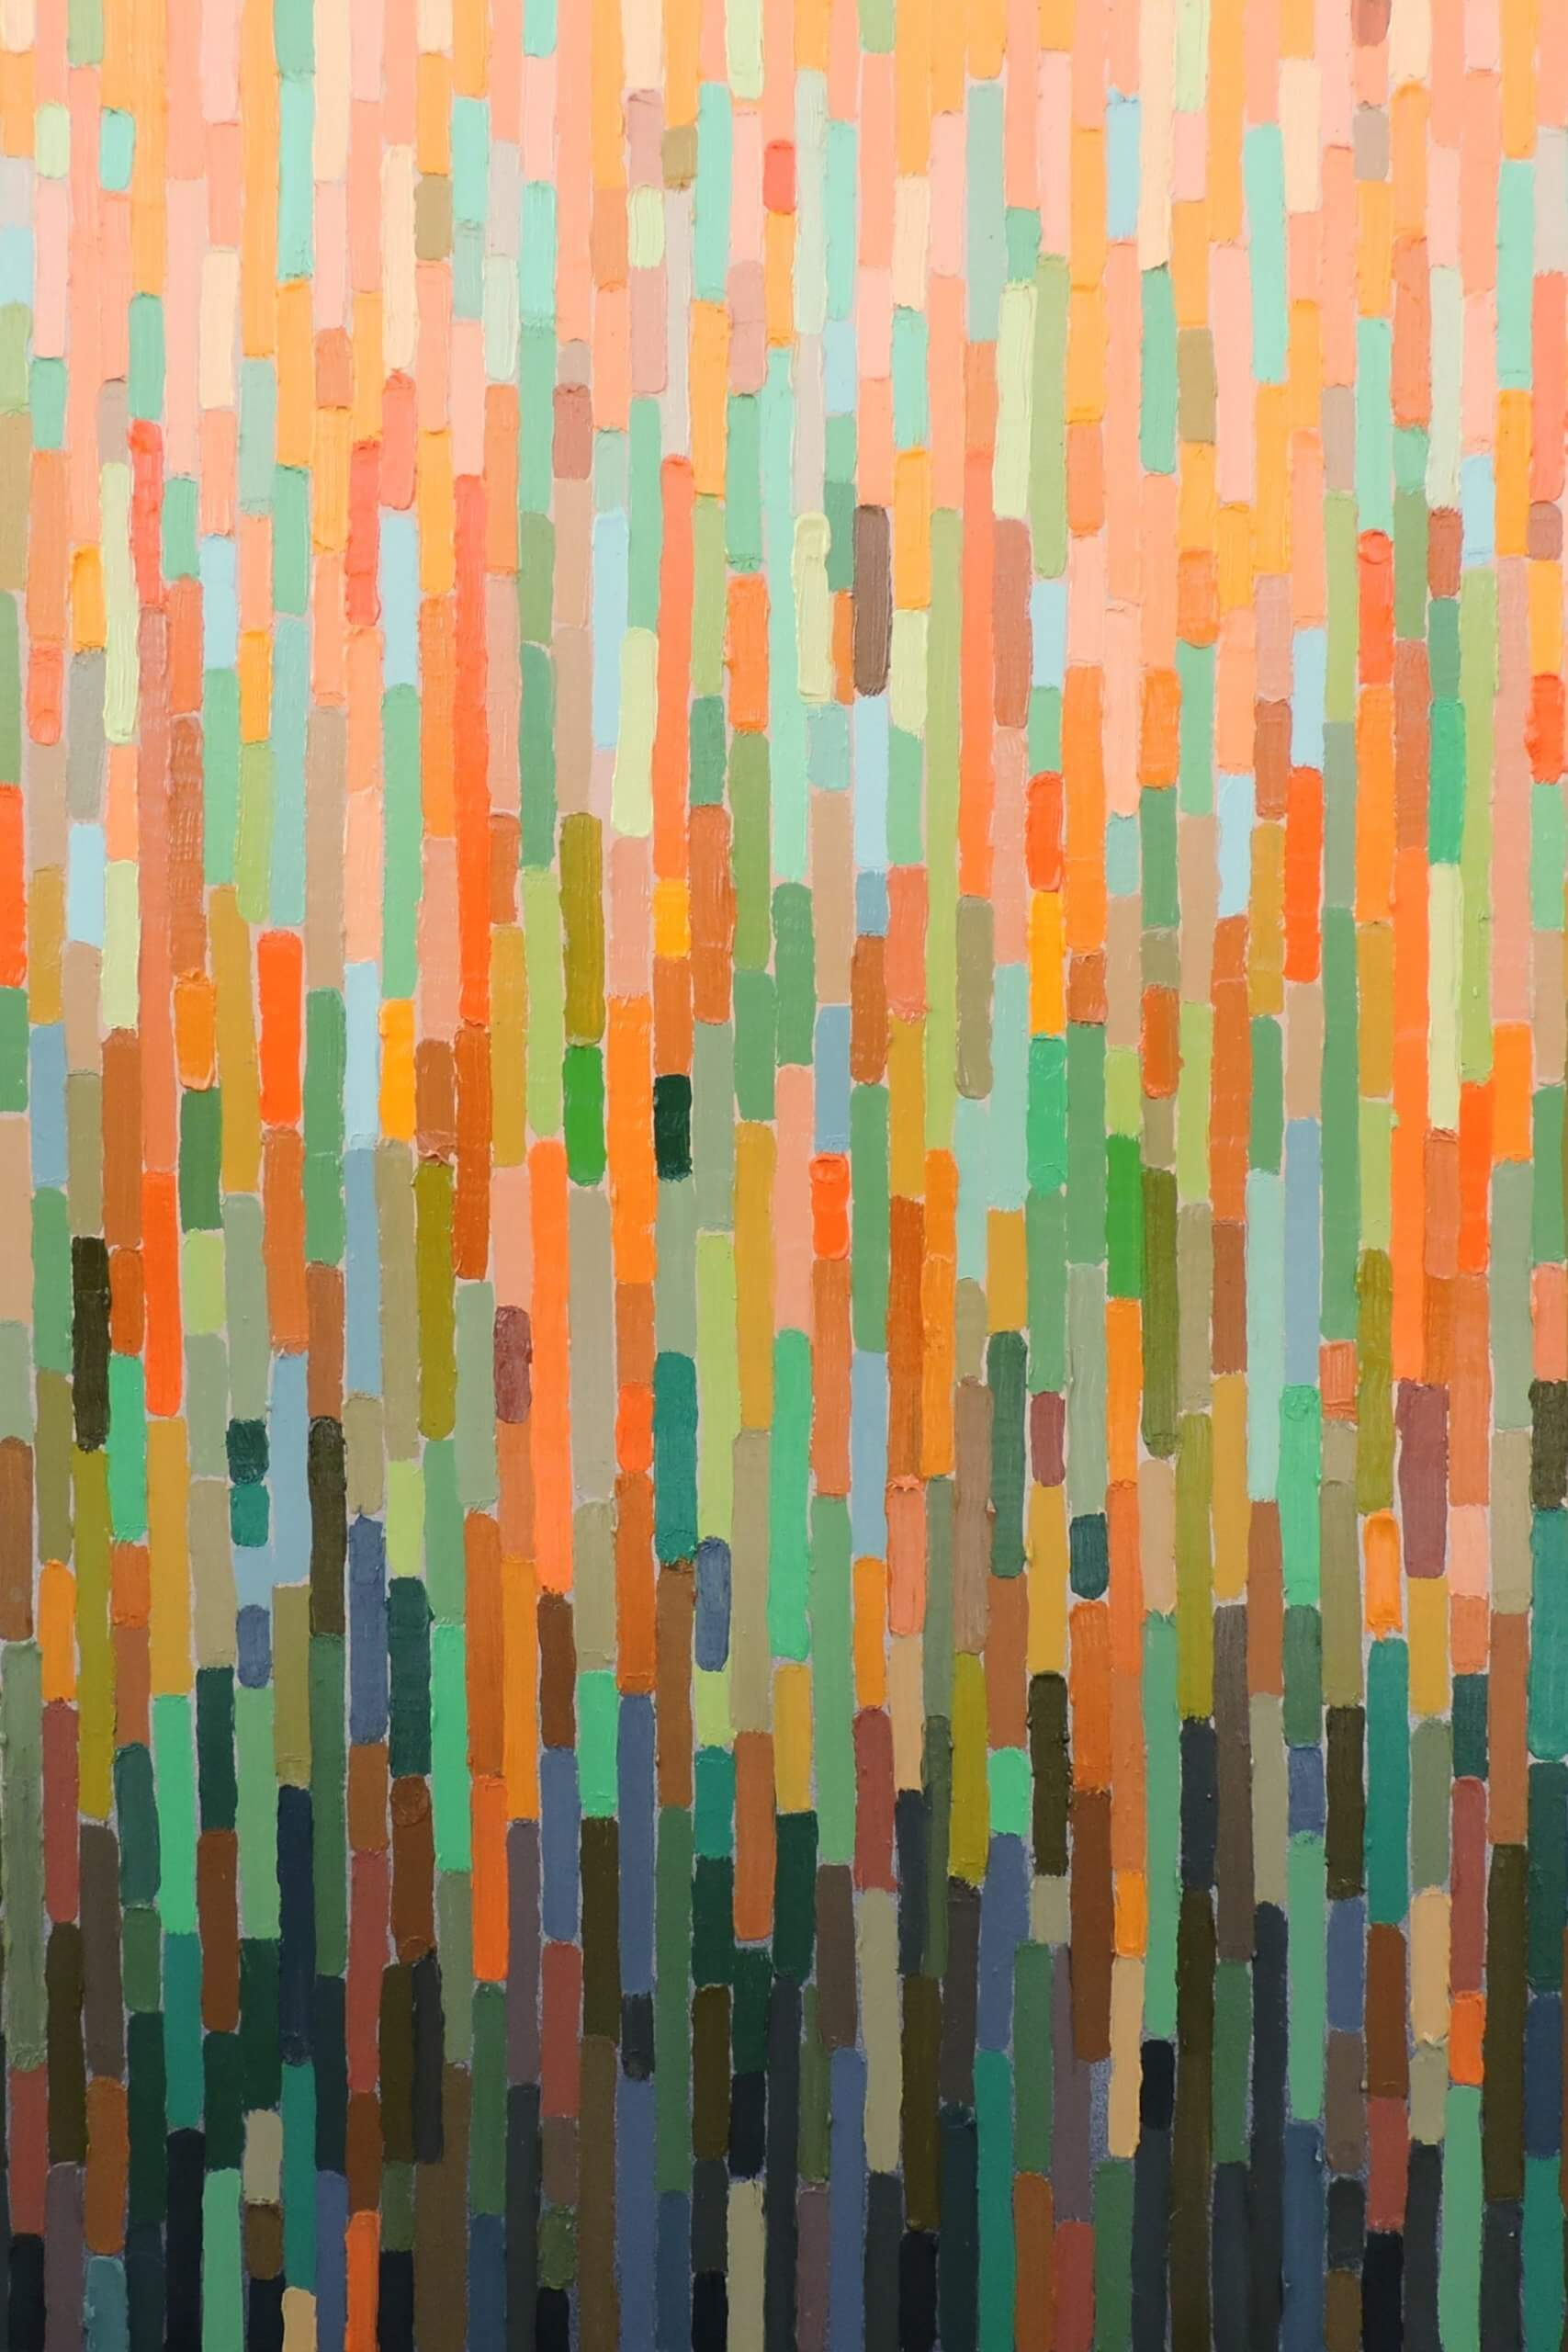 An abstract painting oriented vertically that is made of vertical rectangular strokes of color. The lighter pastel oranges, pinks and greens at the top change to darker tones of greys, greens and blues at the bottom.